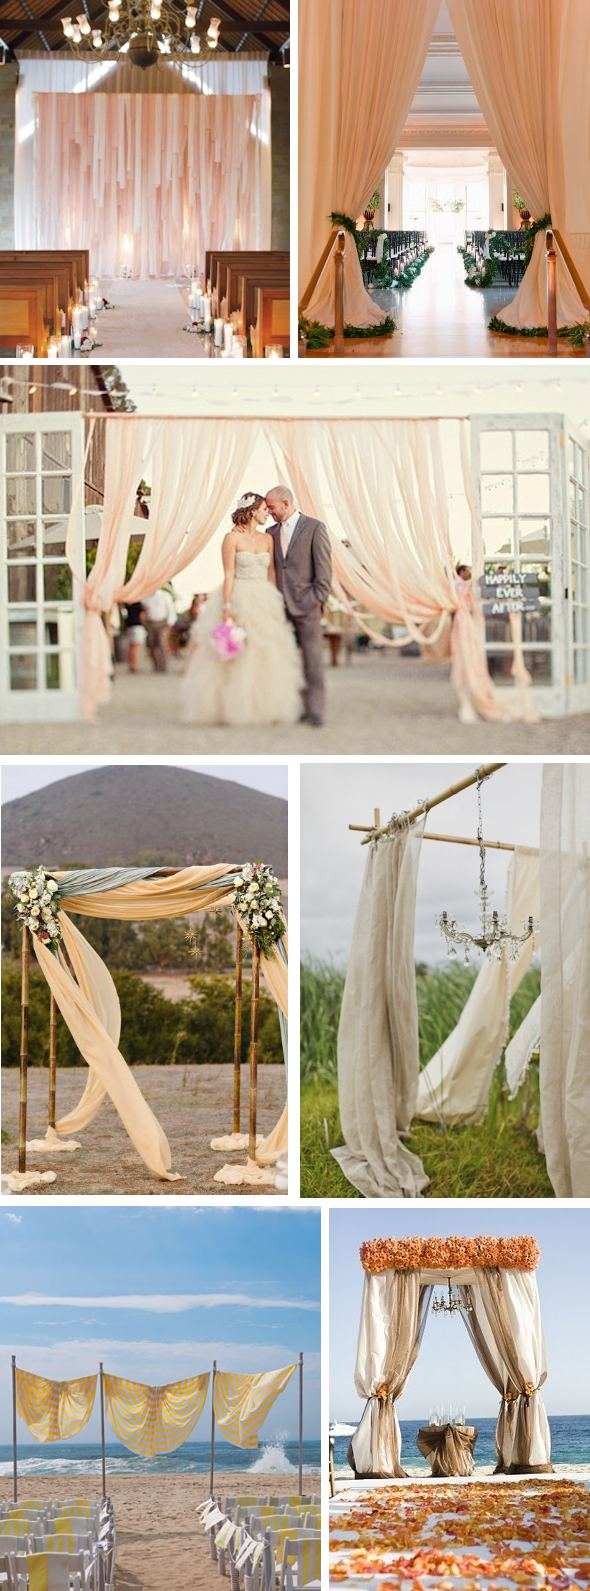 wedding ceremony arches